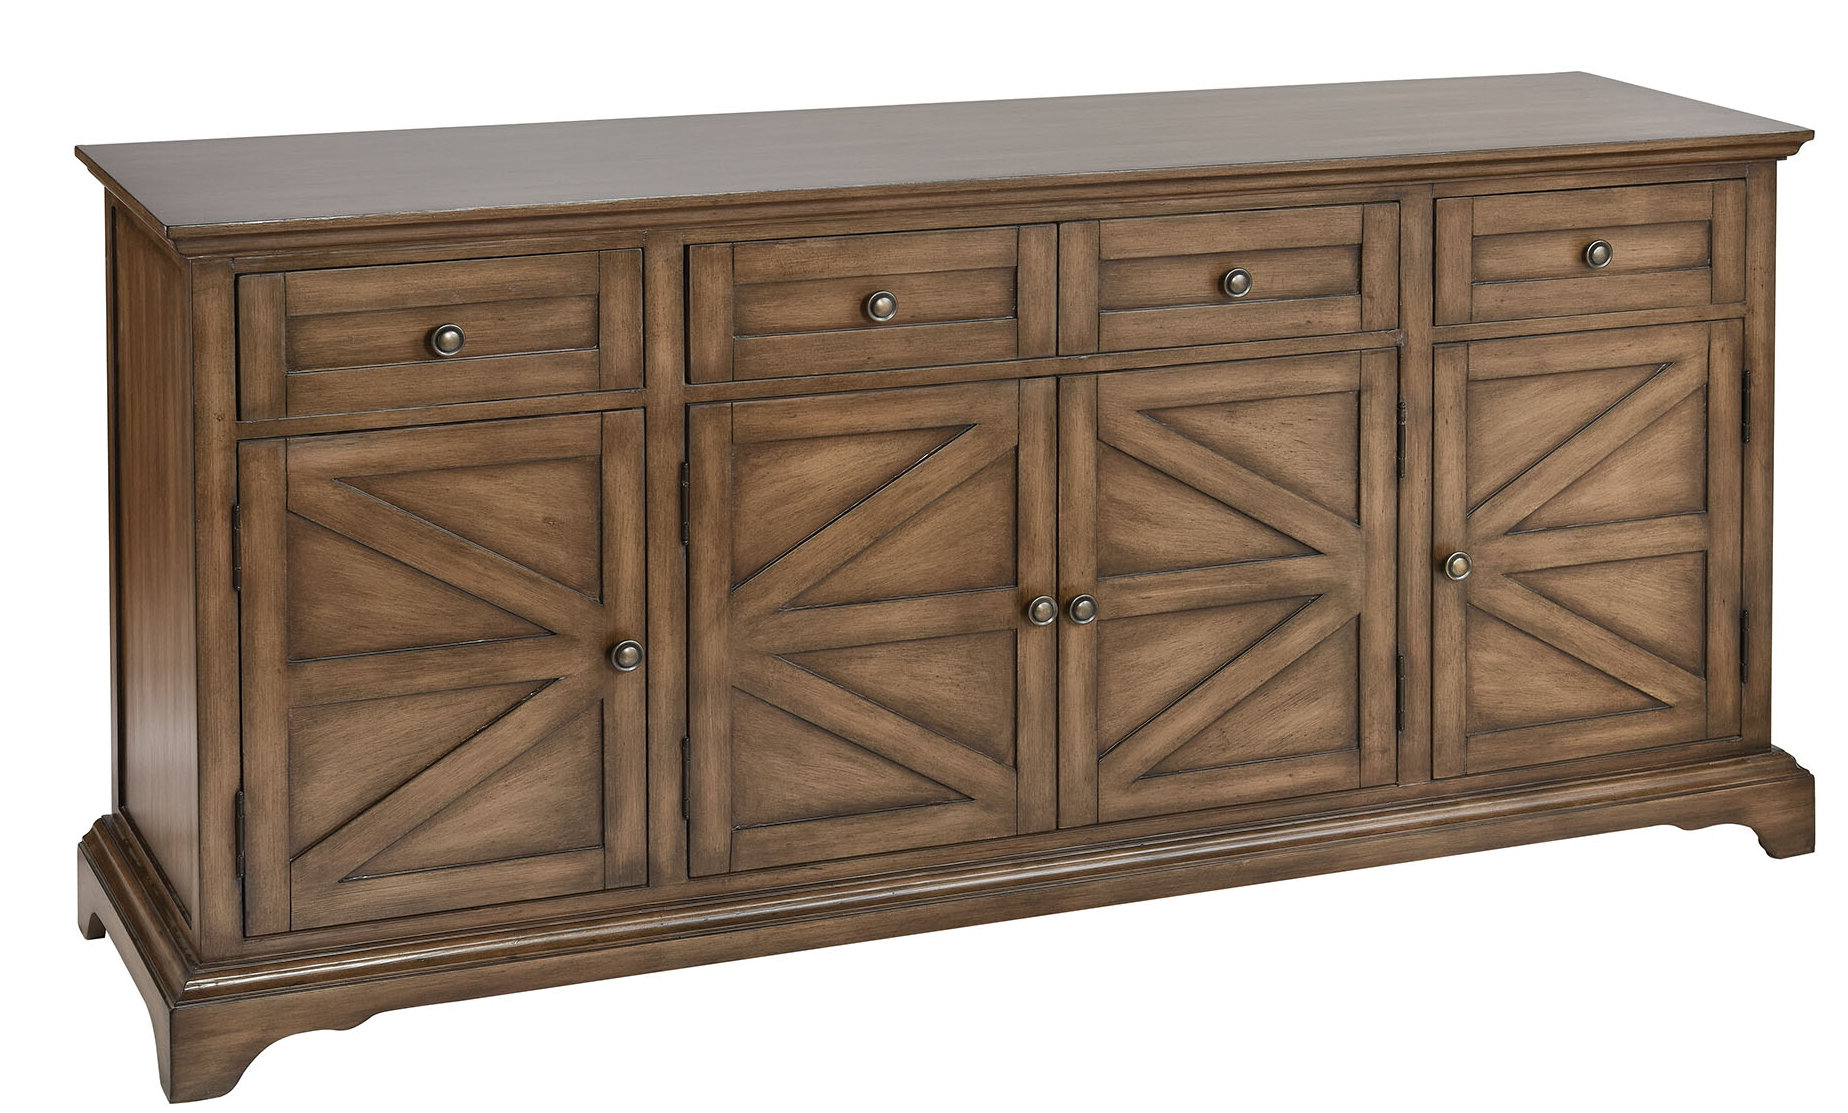 Preferred Pannell Farmhouse Wood Stain Sideboard Intended For Armelle Sideboards (View 19 of 20)